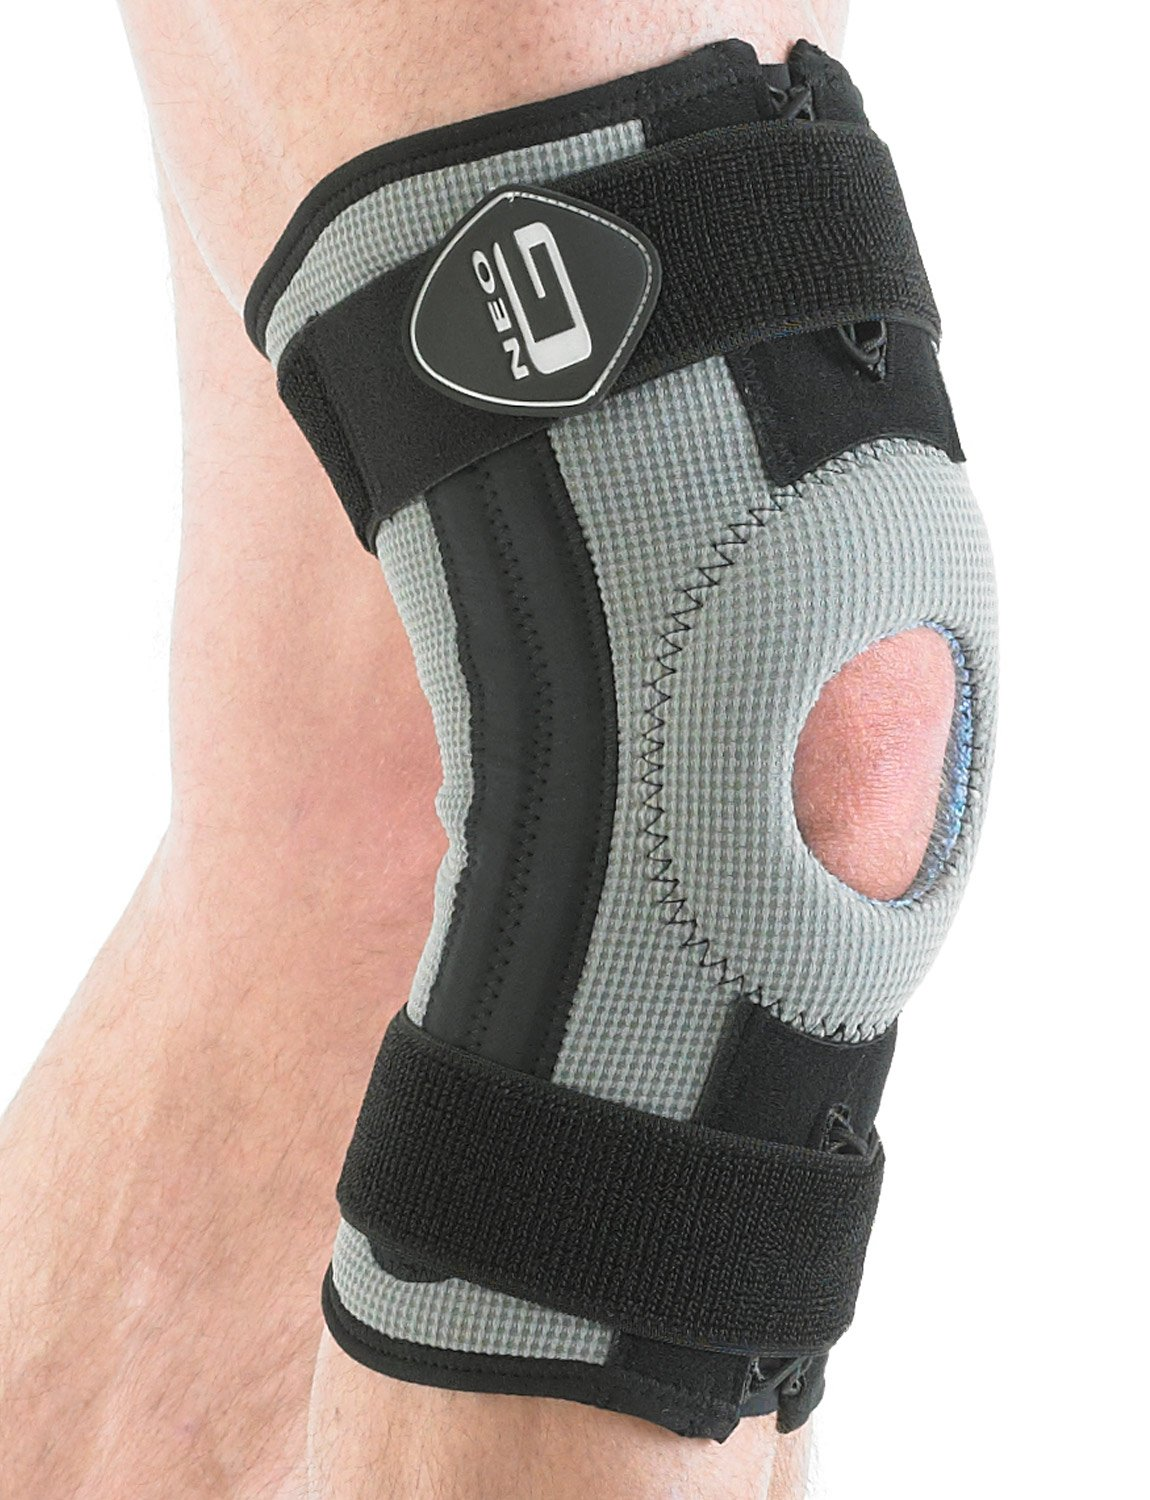 NEO G RX Stabilized Knee Support - LARGE - Medical Grade Quality, breathable fabric HELPS injured, weak or arthritic knees, strains, sprains, pain, instability, patellar tracking - Unisex Support